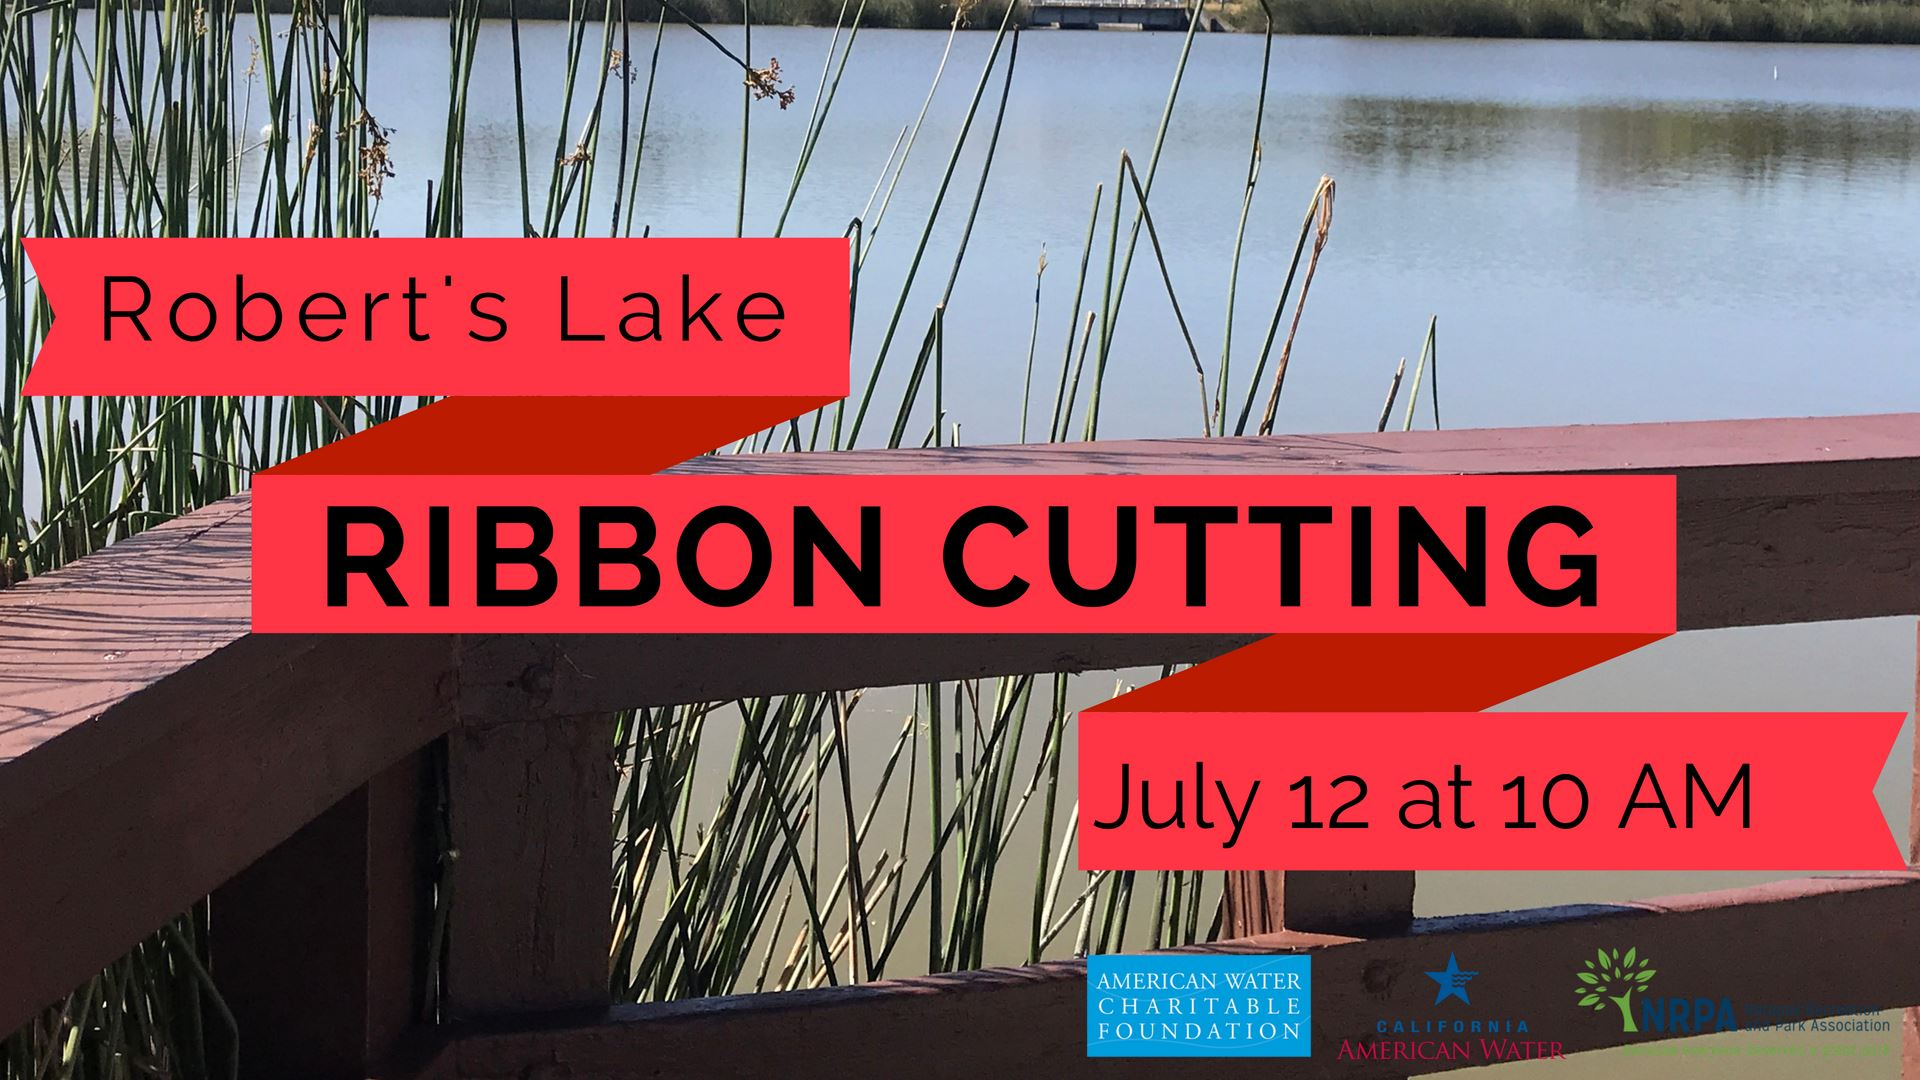 Roberts Lake Ribbon Cutting